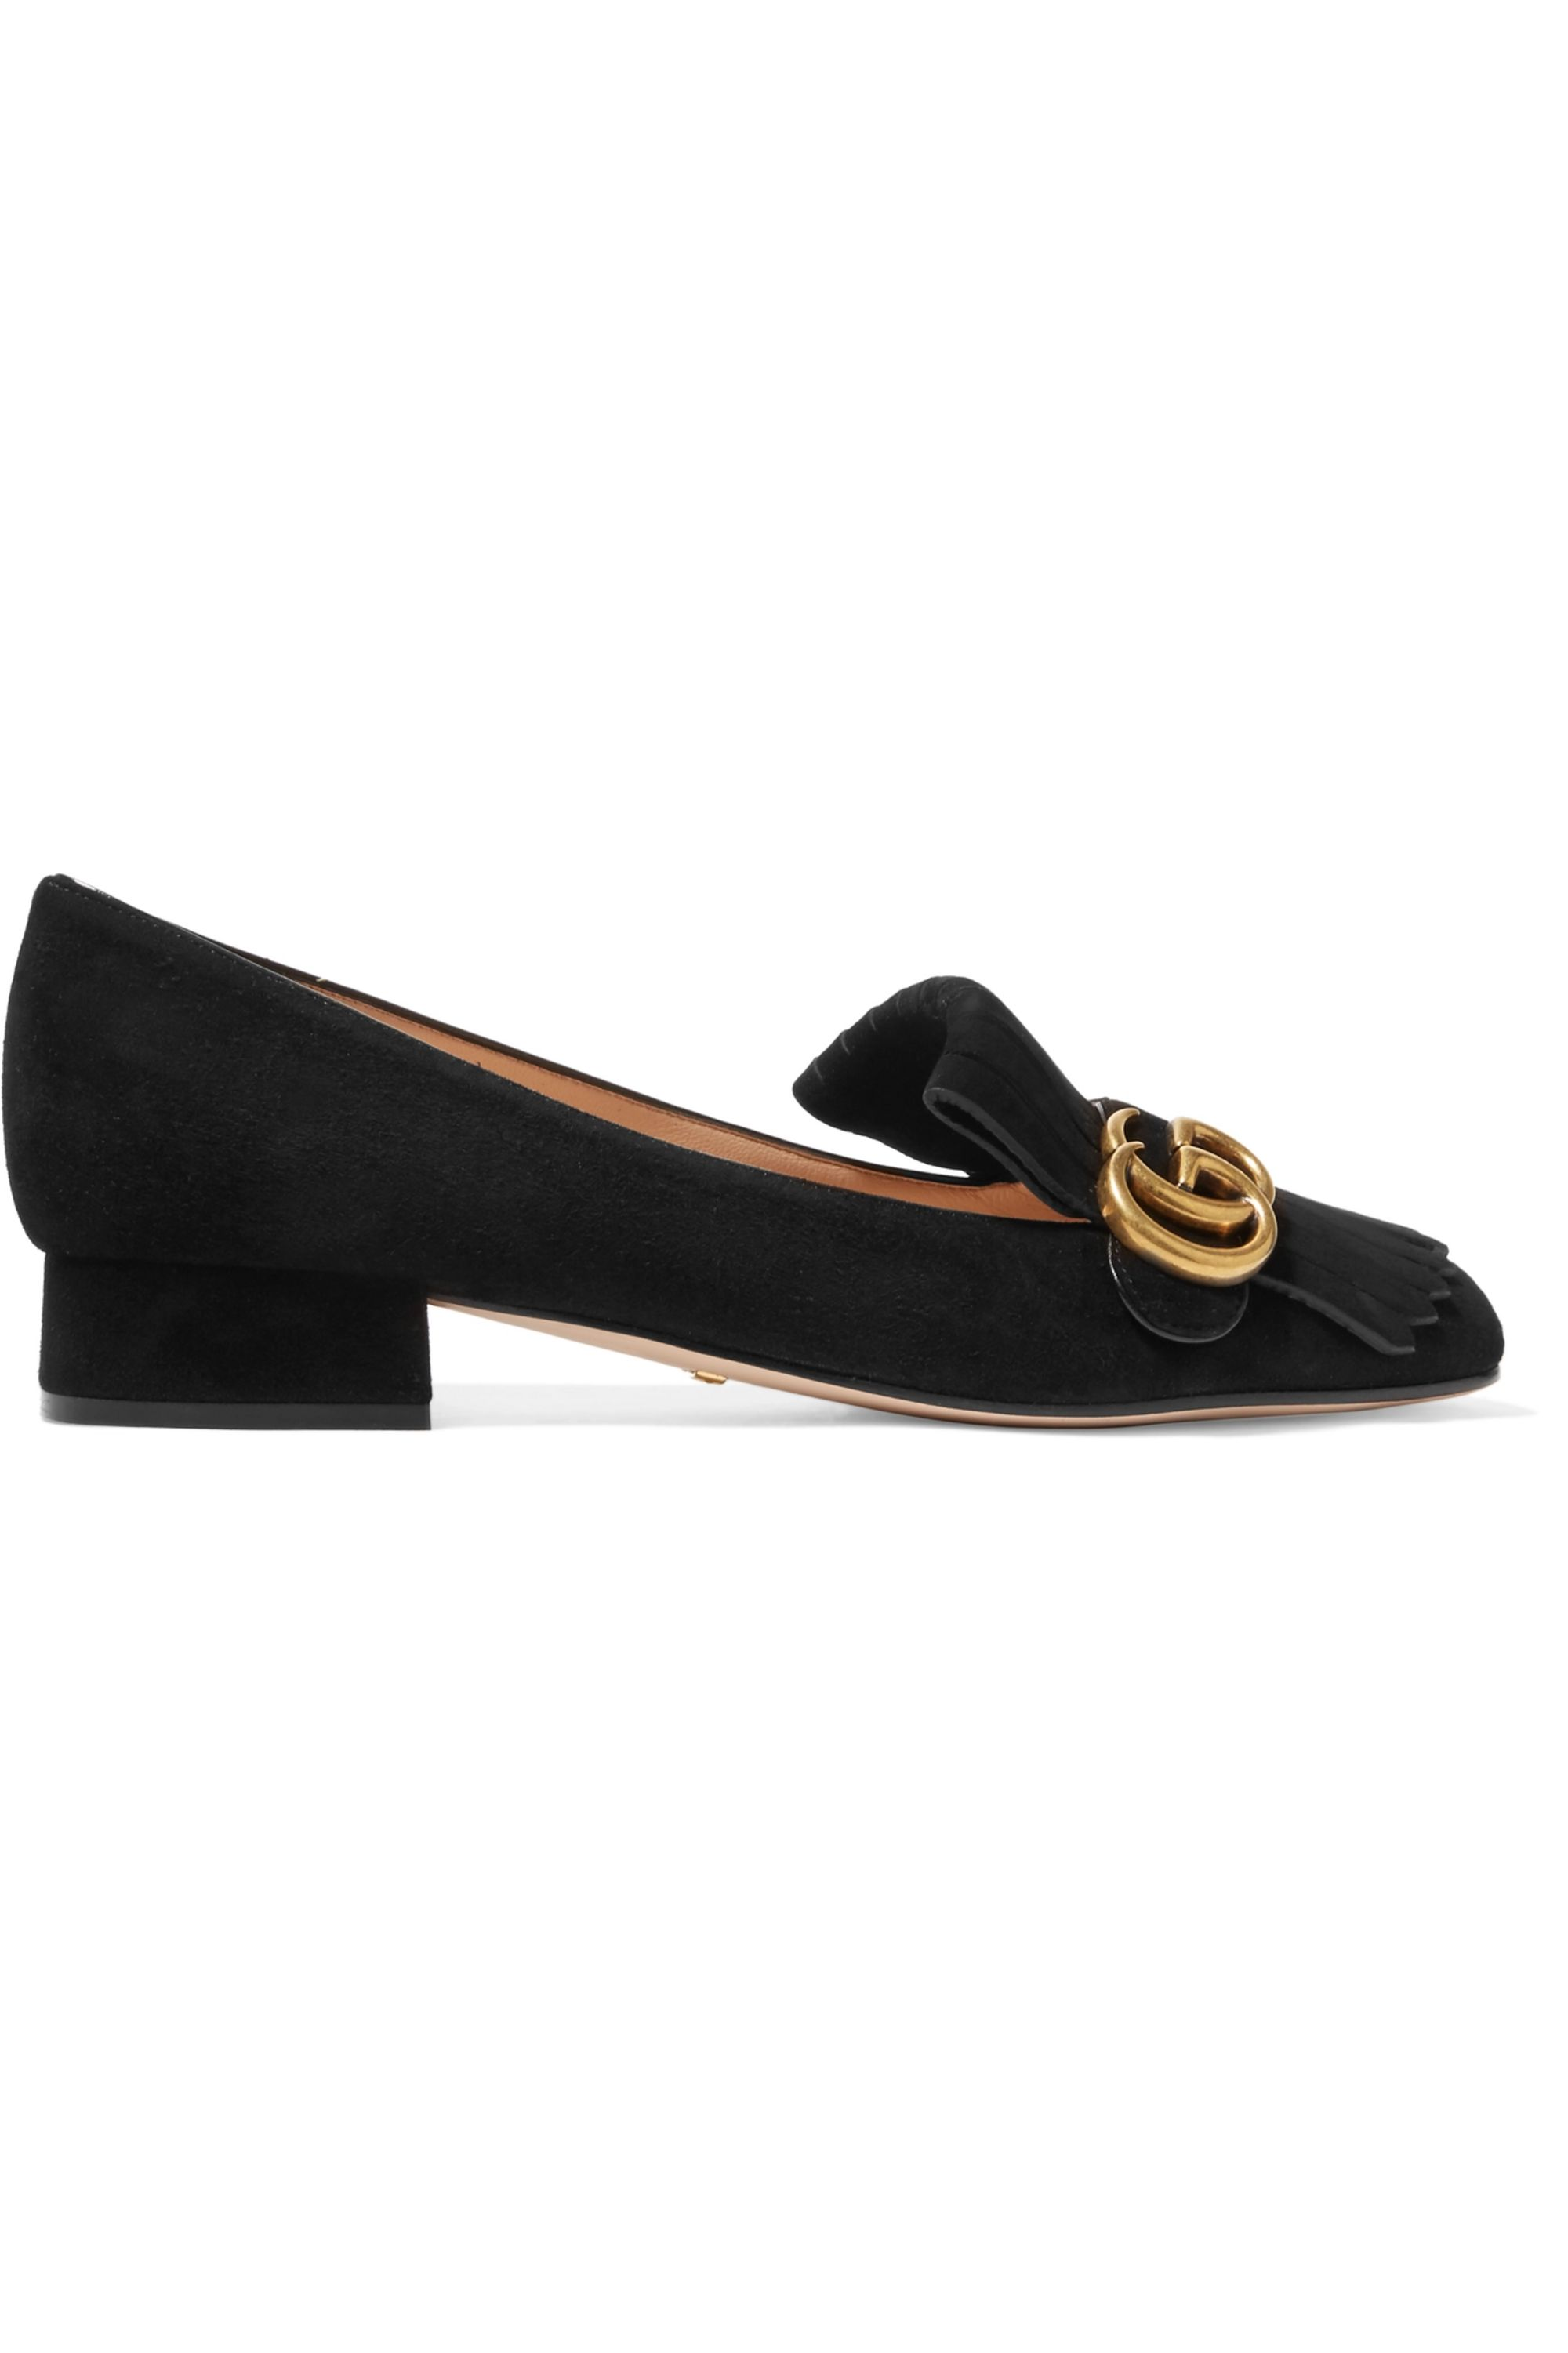 Marmont fringed suede loafers   Gucci